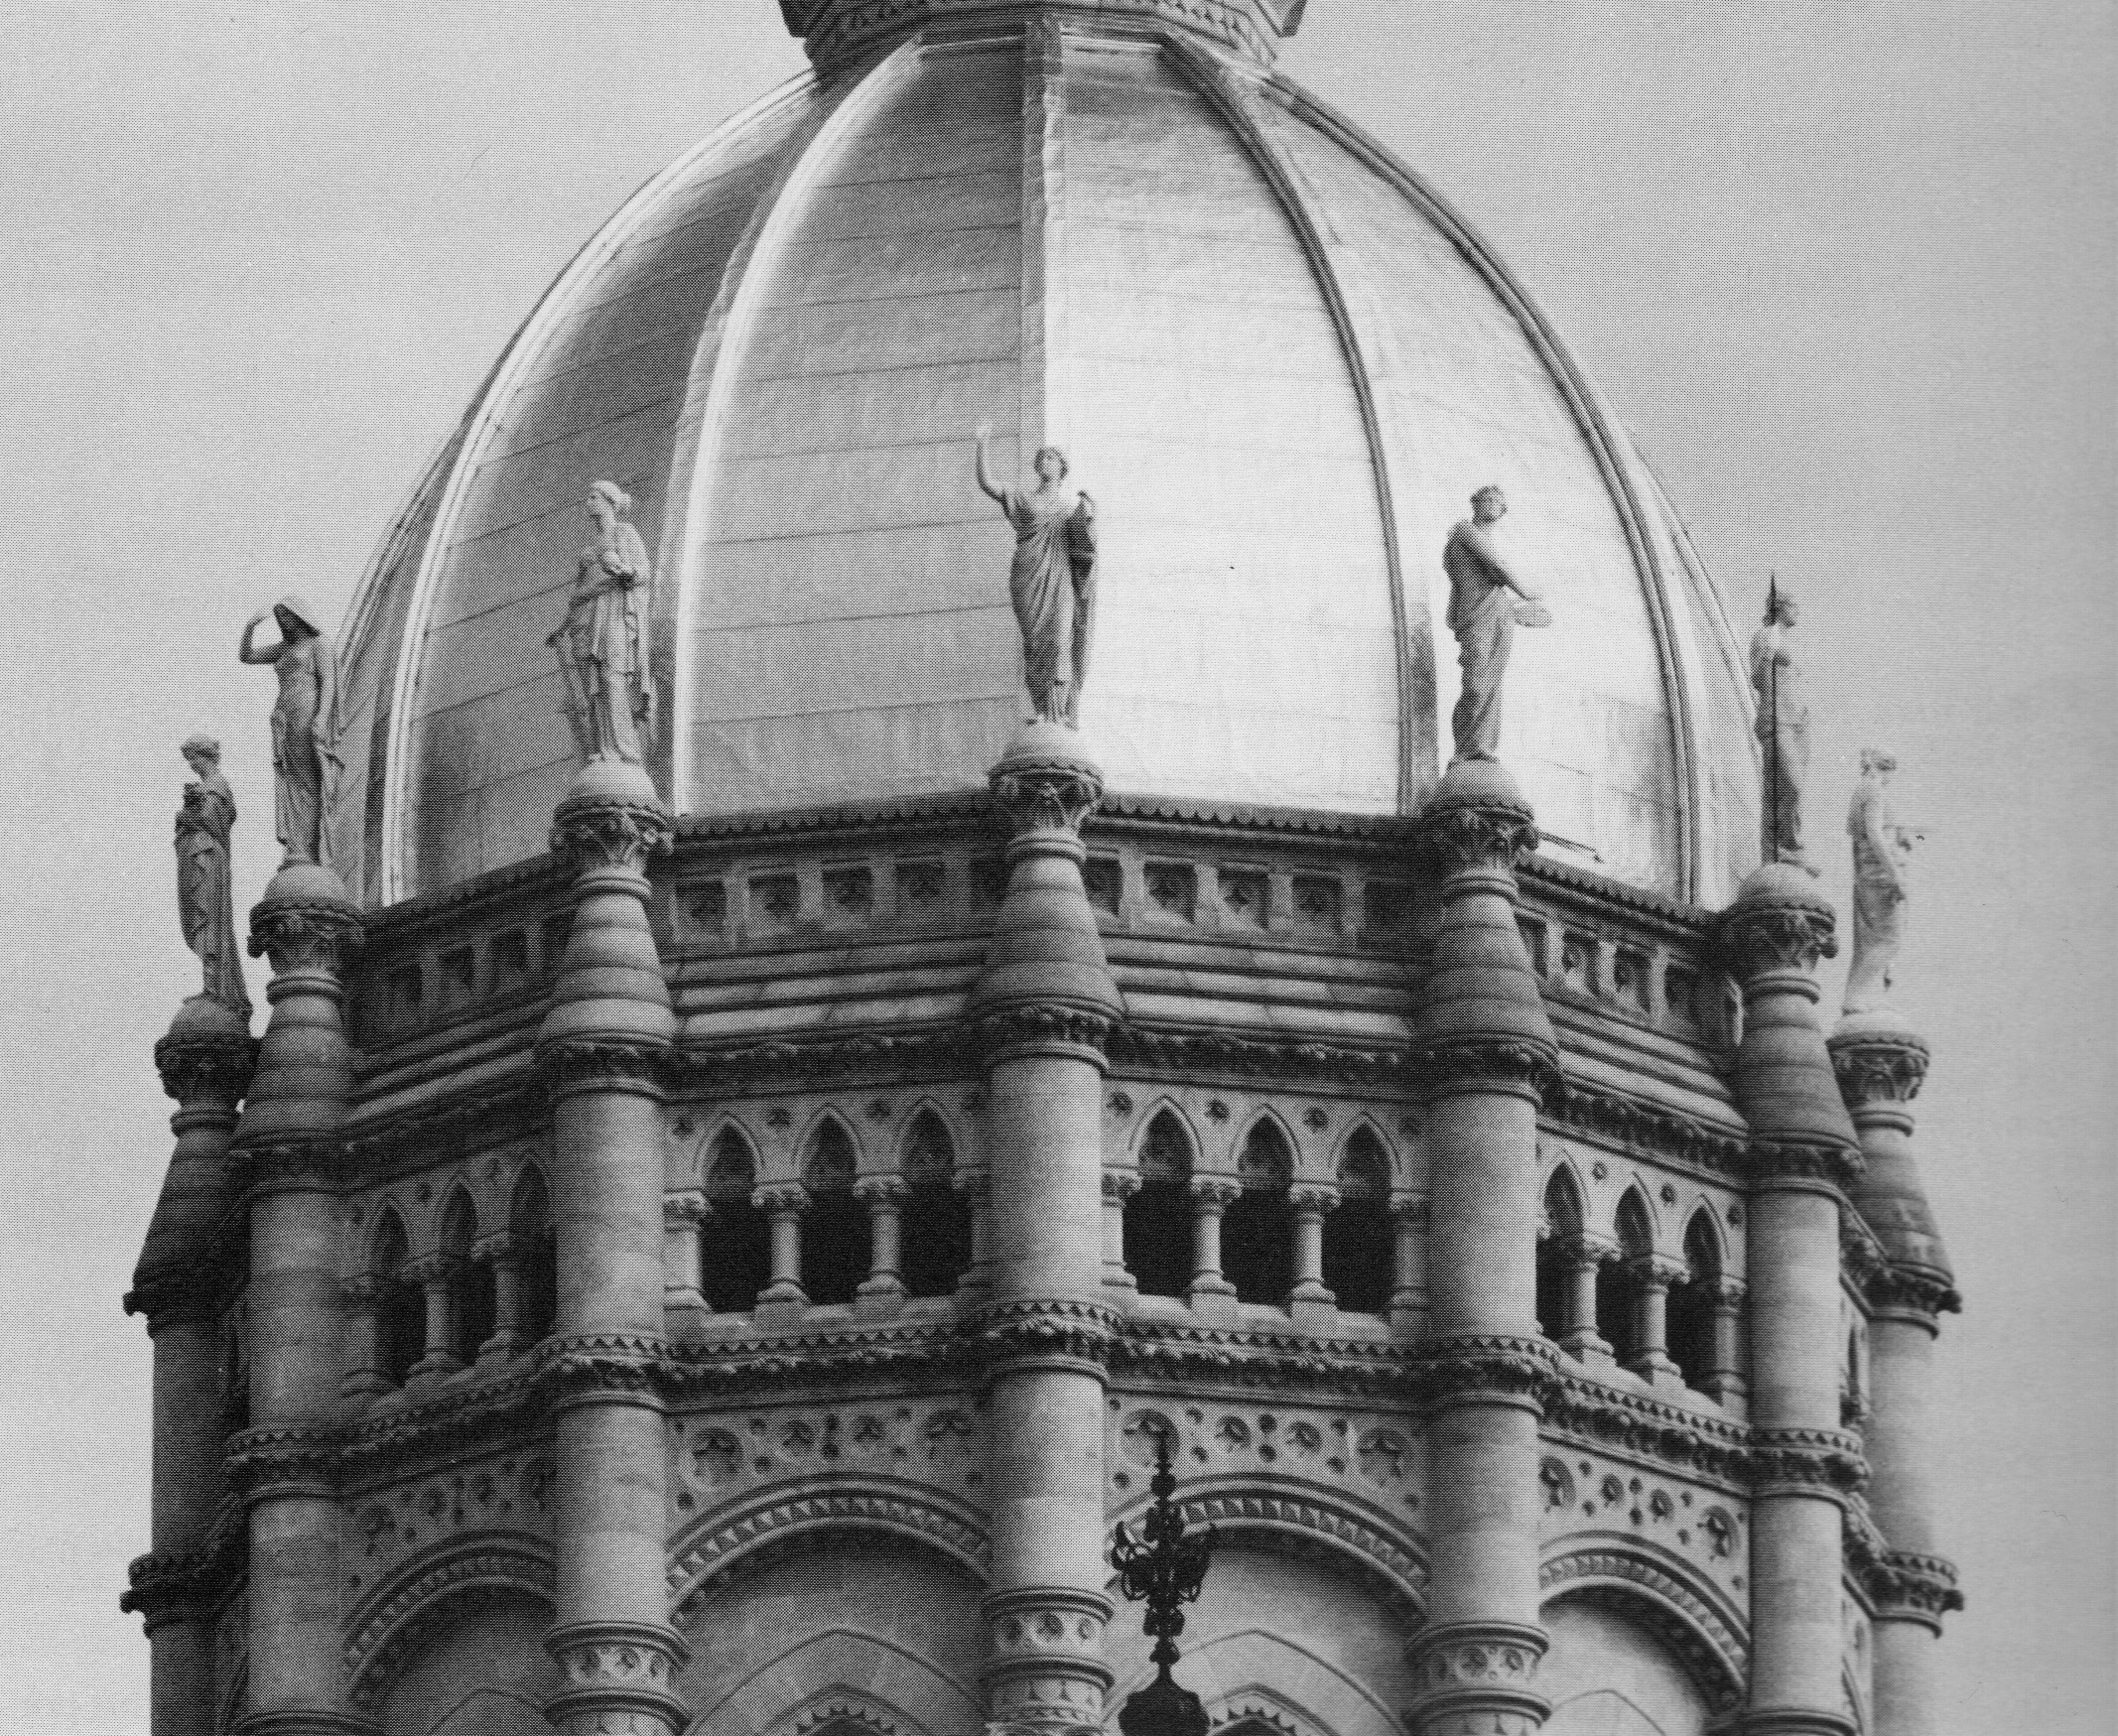 The dome of the State Capitol Building with 12 marble statues    .